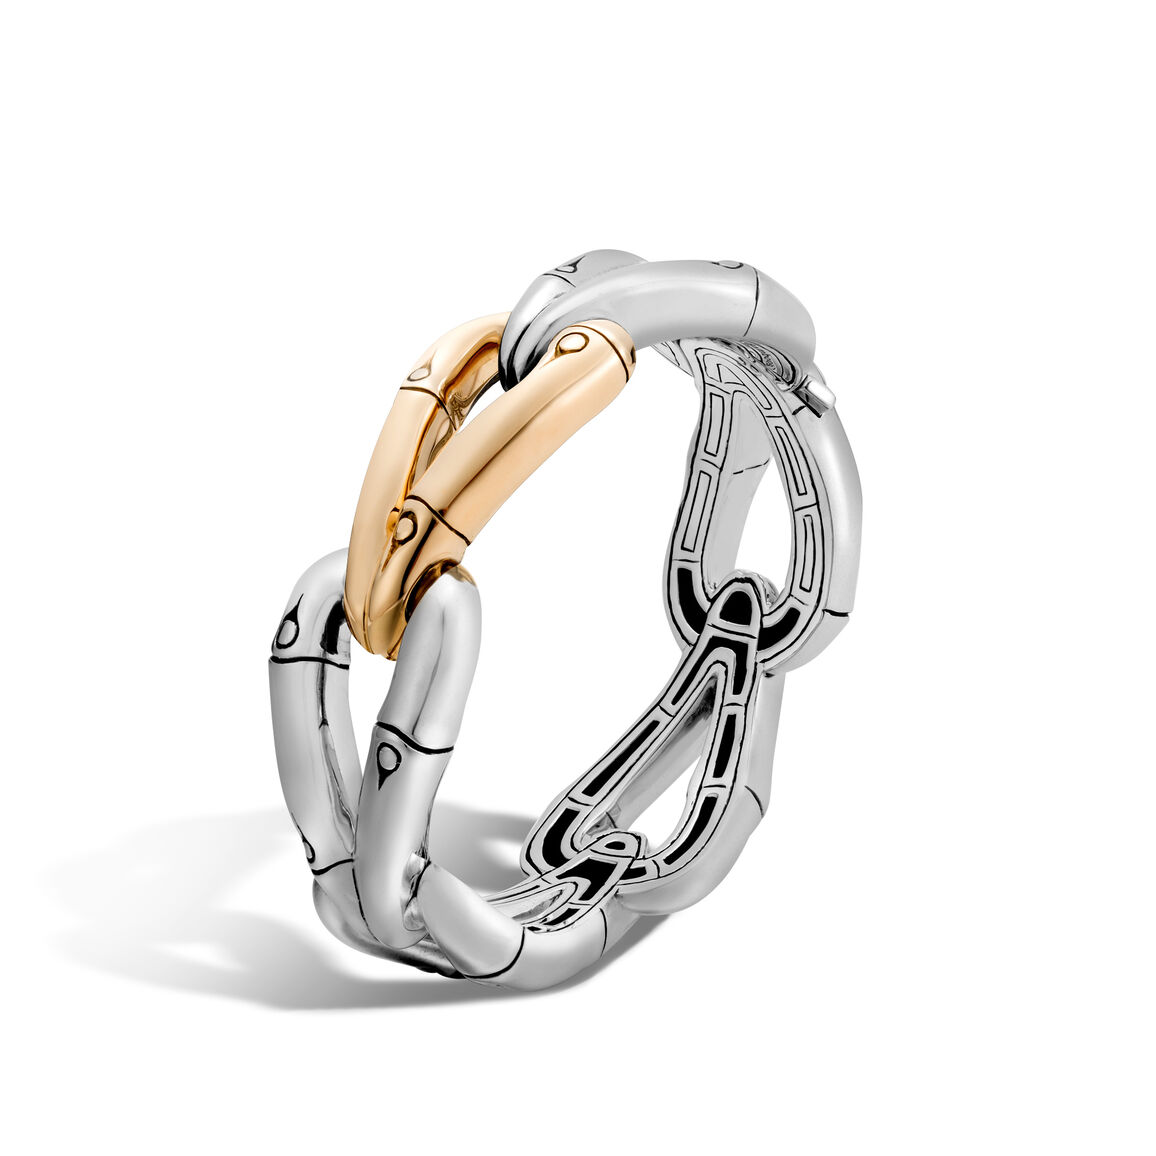 Bamboo 23MM Hinged Bangle in Silver and 18K Gold